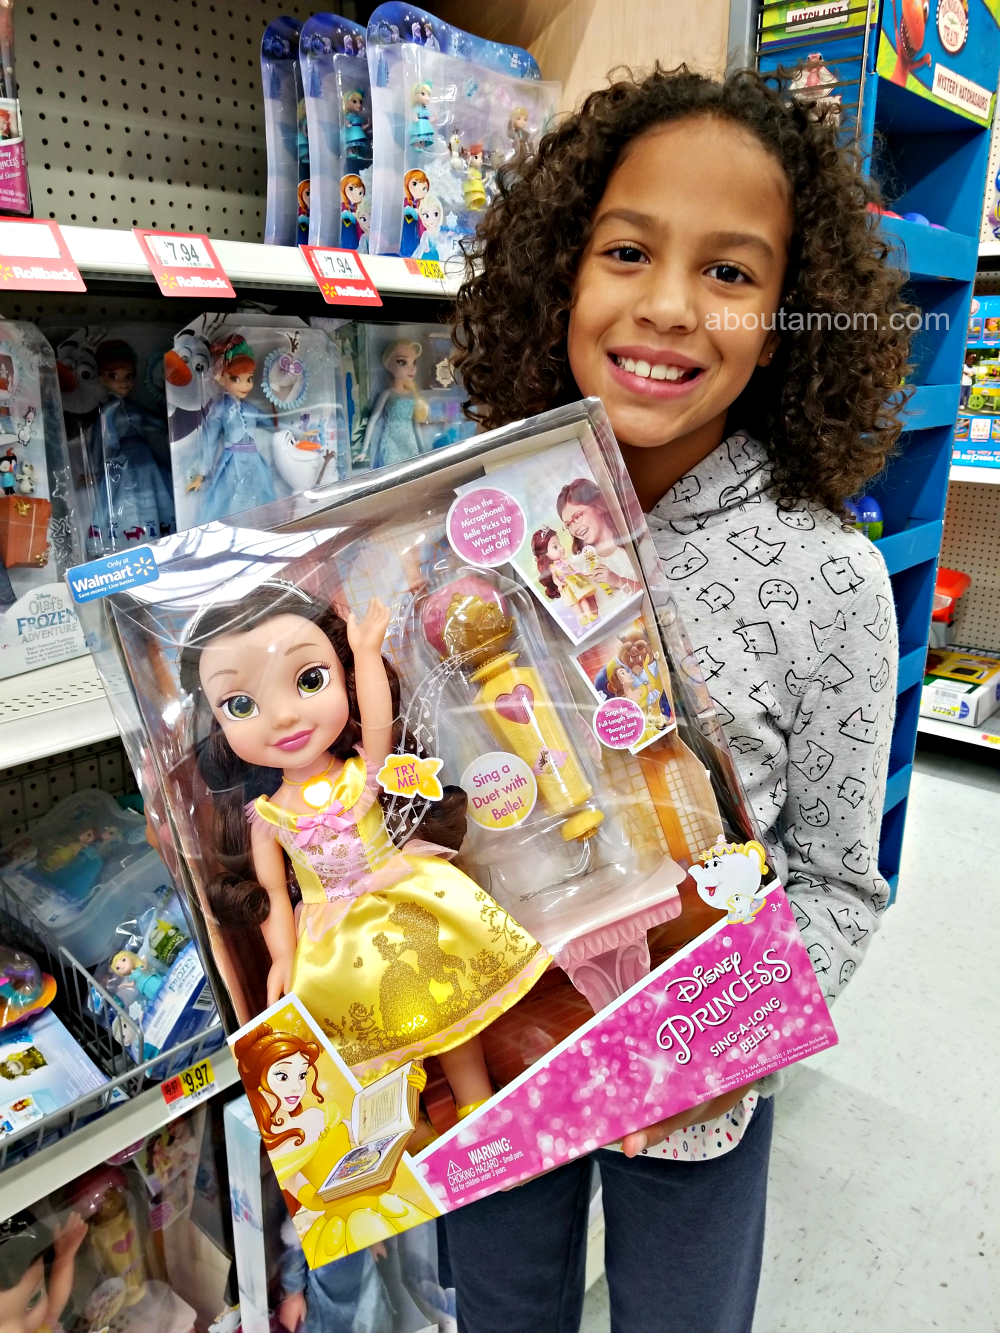 Check out the must-have interactive toys for girls available at Walmart this holiday season. Most require batteries, so be sure to stock up on plenty Energizer batteries while you're shopping.